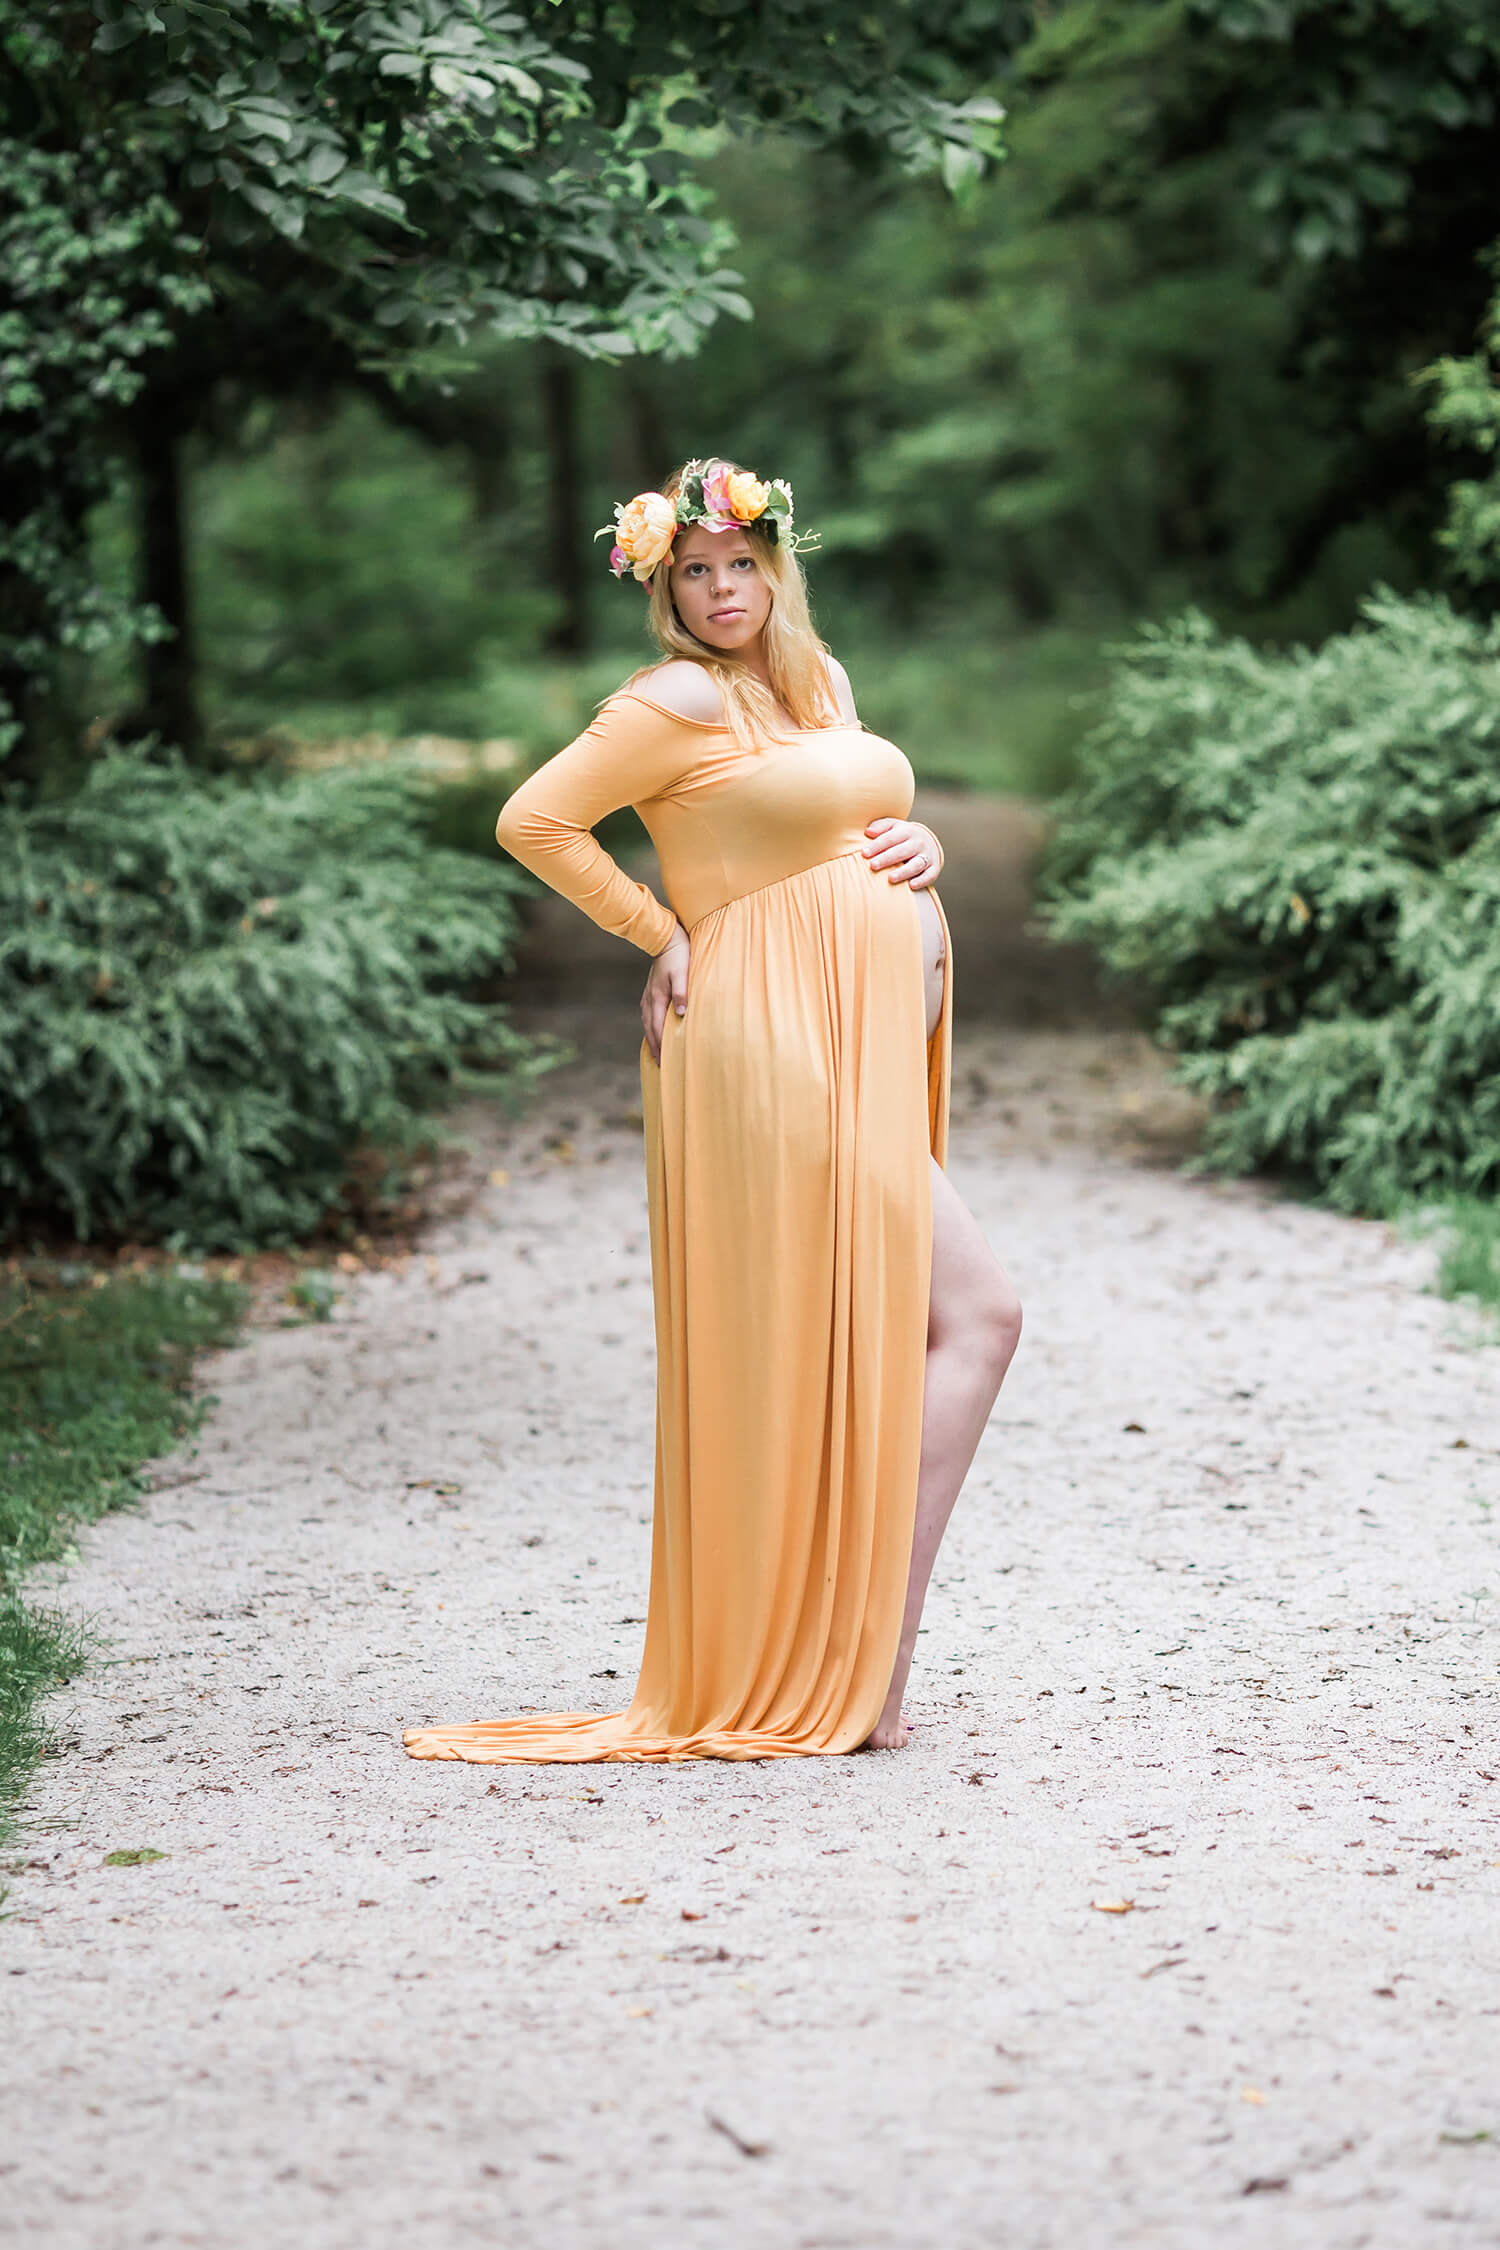 Sweet Snaps Photography - Pregnancy Photographer